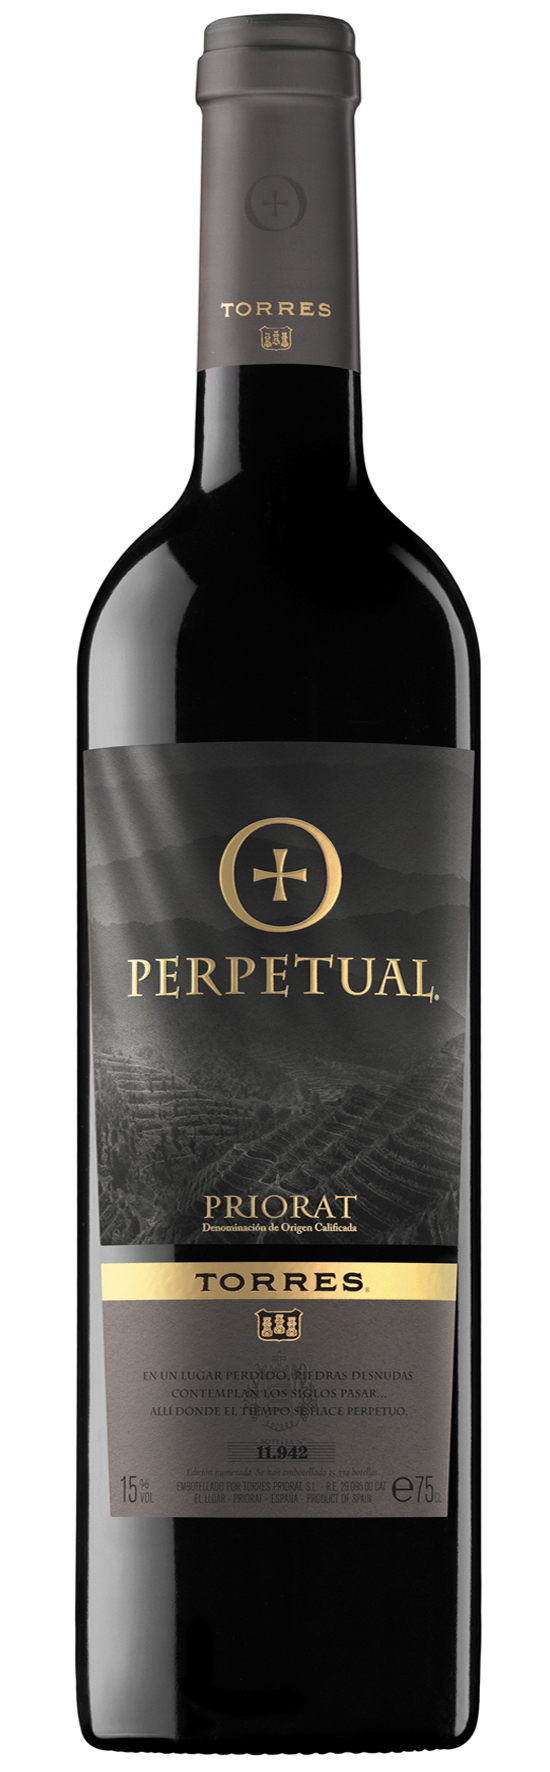 Perpetual 2013 Miguel Torres DO Priorat